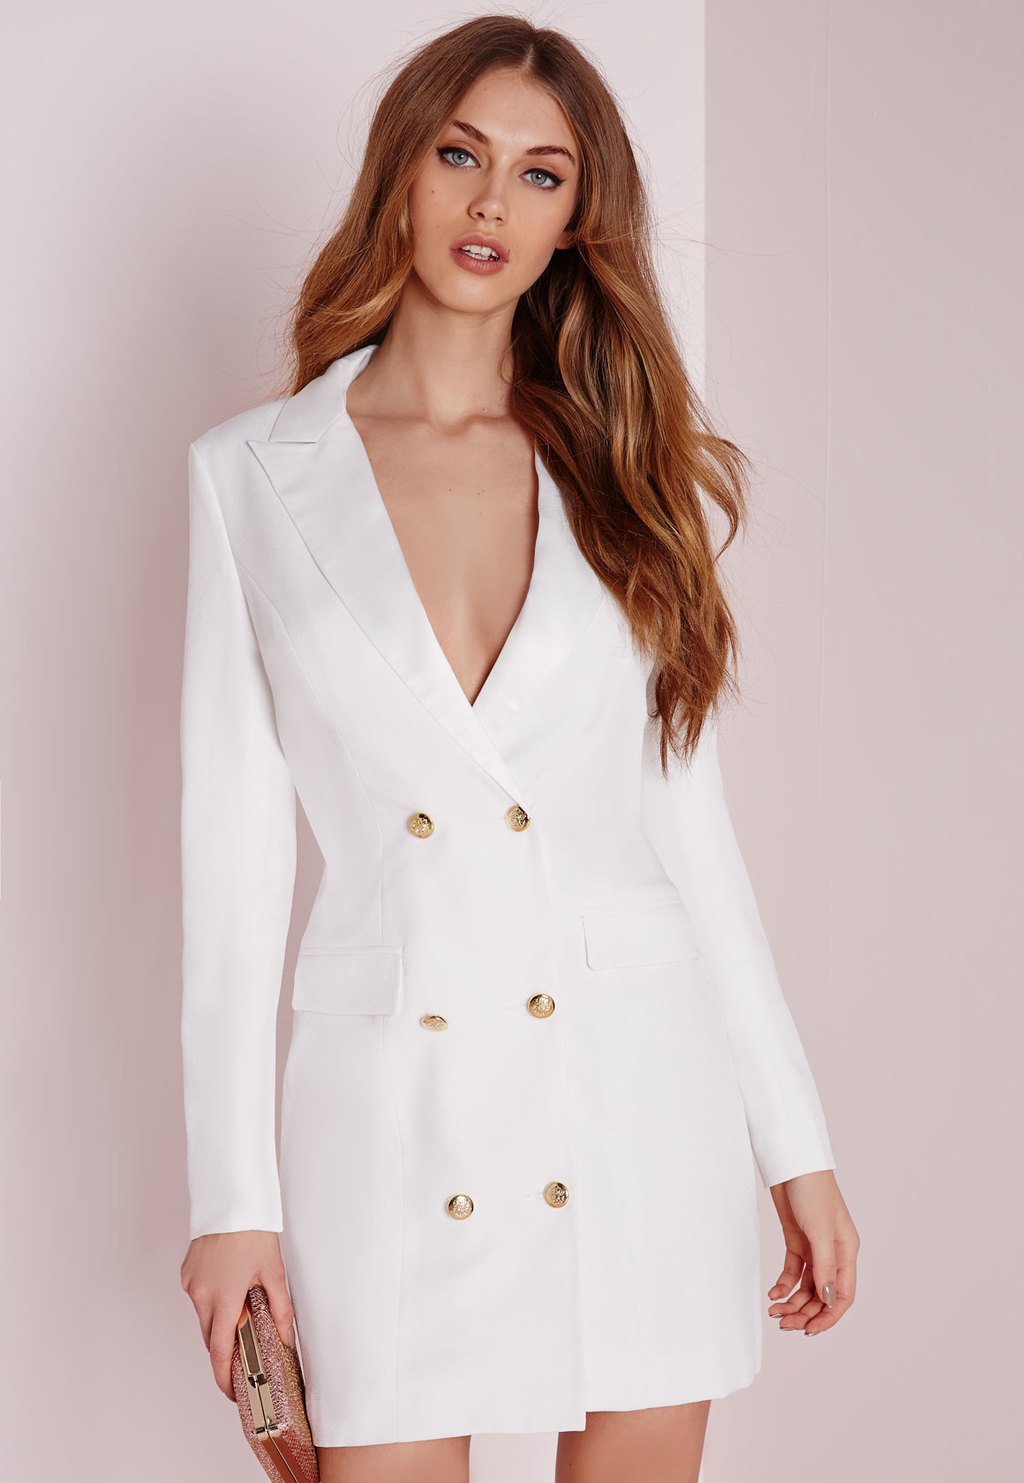 Petite Long Sleeve Tuxedo Dress White, White - style: shift; length: mini; neckline: low v-neck; fit: tailored/fitted; pattern: plain; predominant colour: white; occasions: evening; fibres: polyester/polyamide - 100%; sleeve length: long sleeve; sleeve style: standard; pattern type: fabric; texture group: other - light to midweight; season: s/s 2016; wardrobe: event